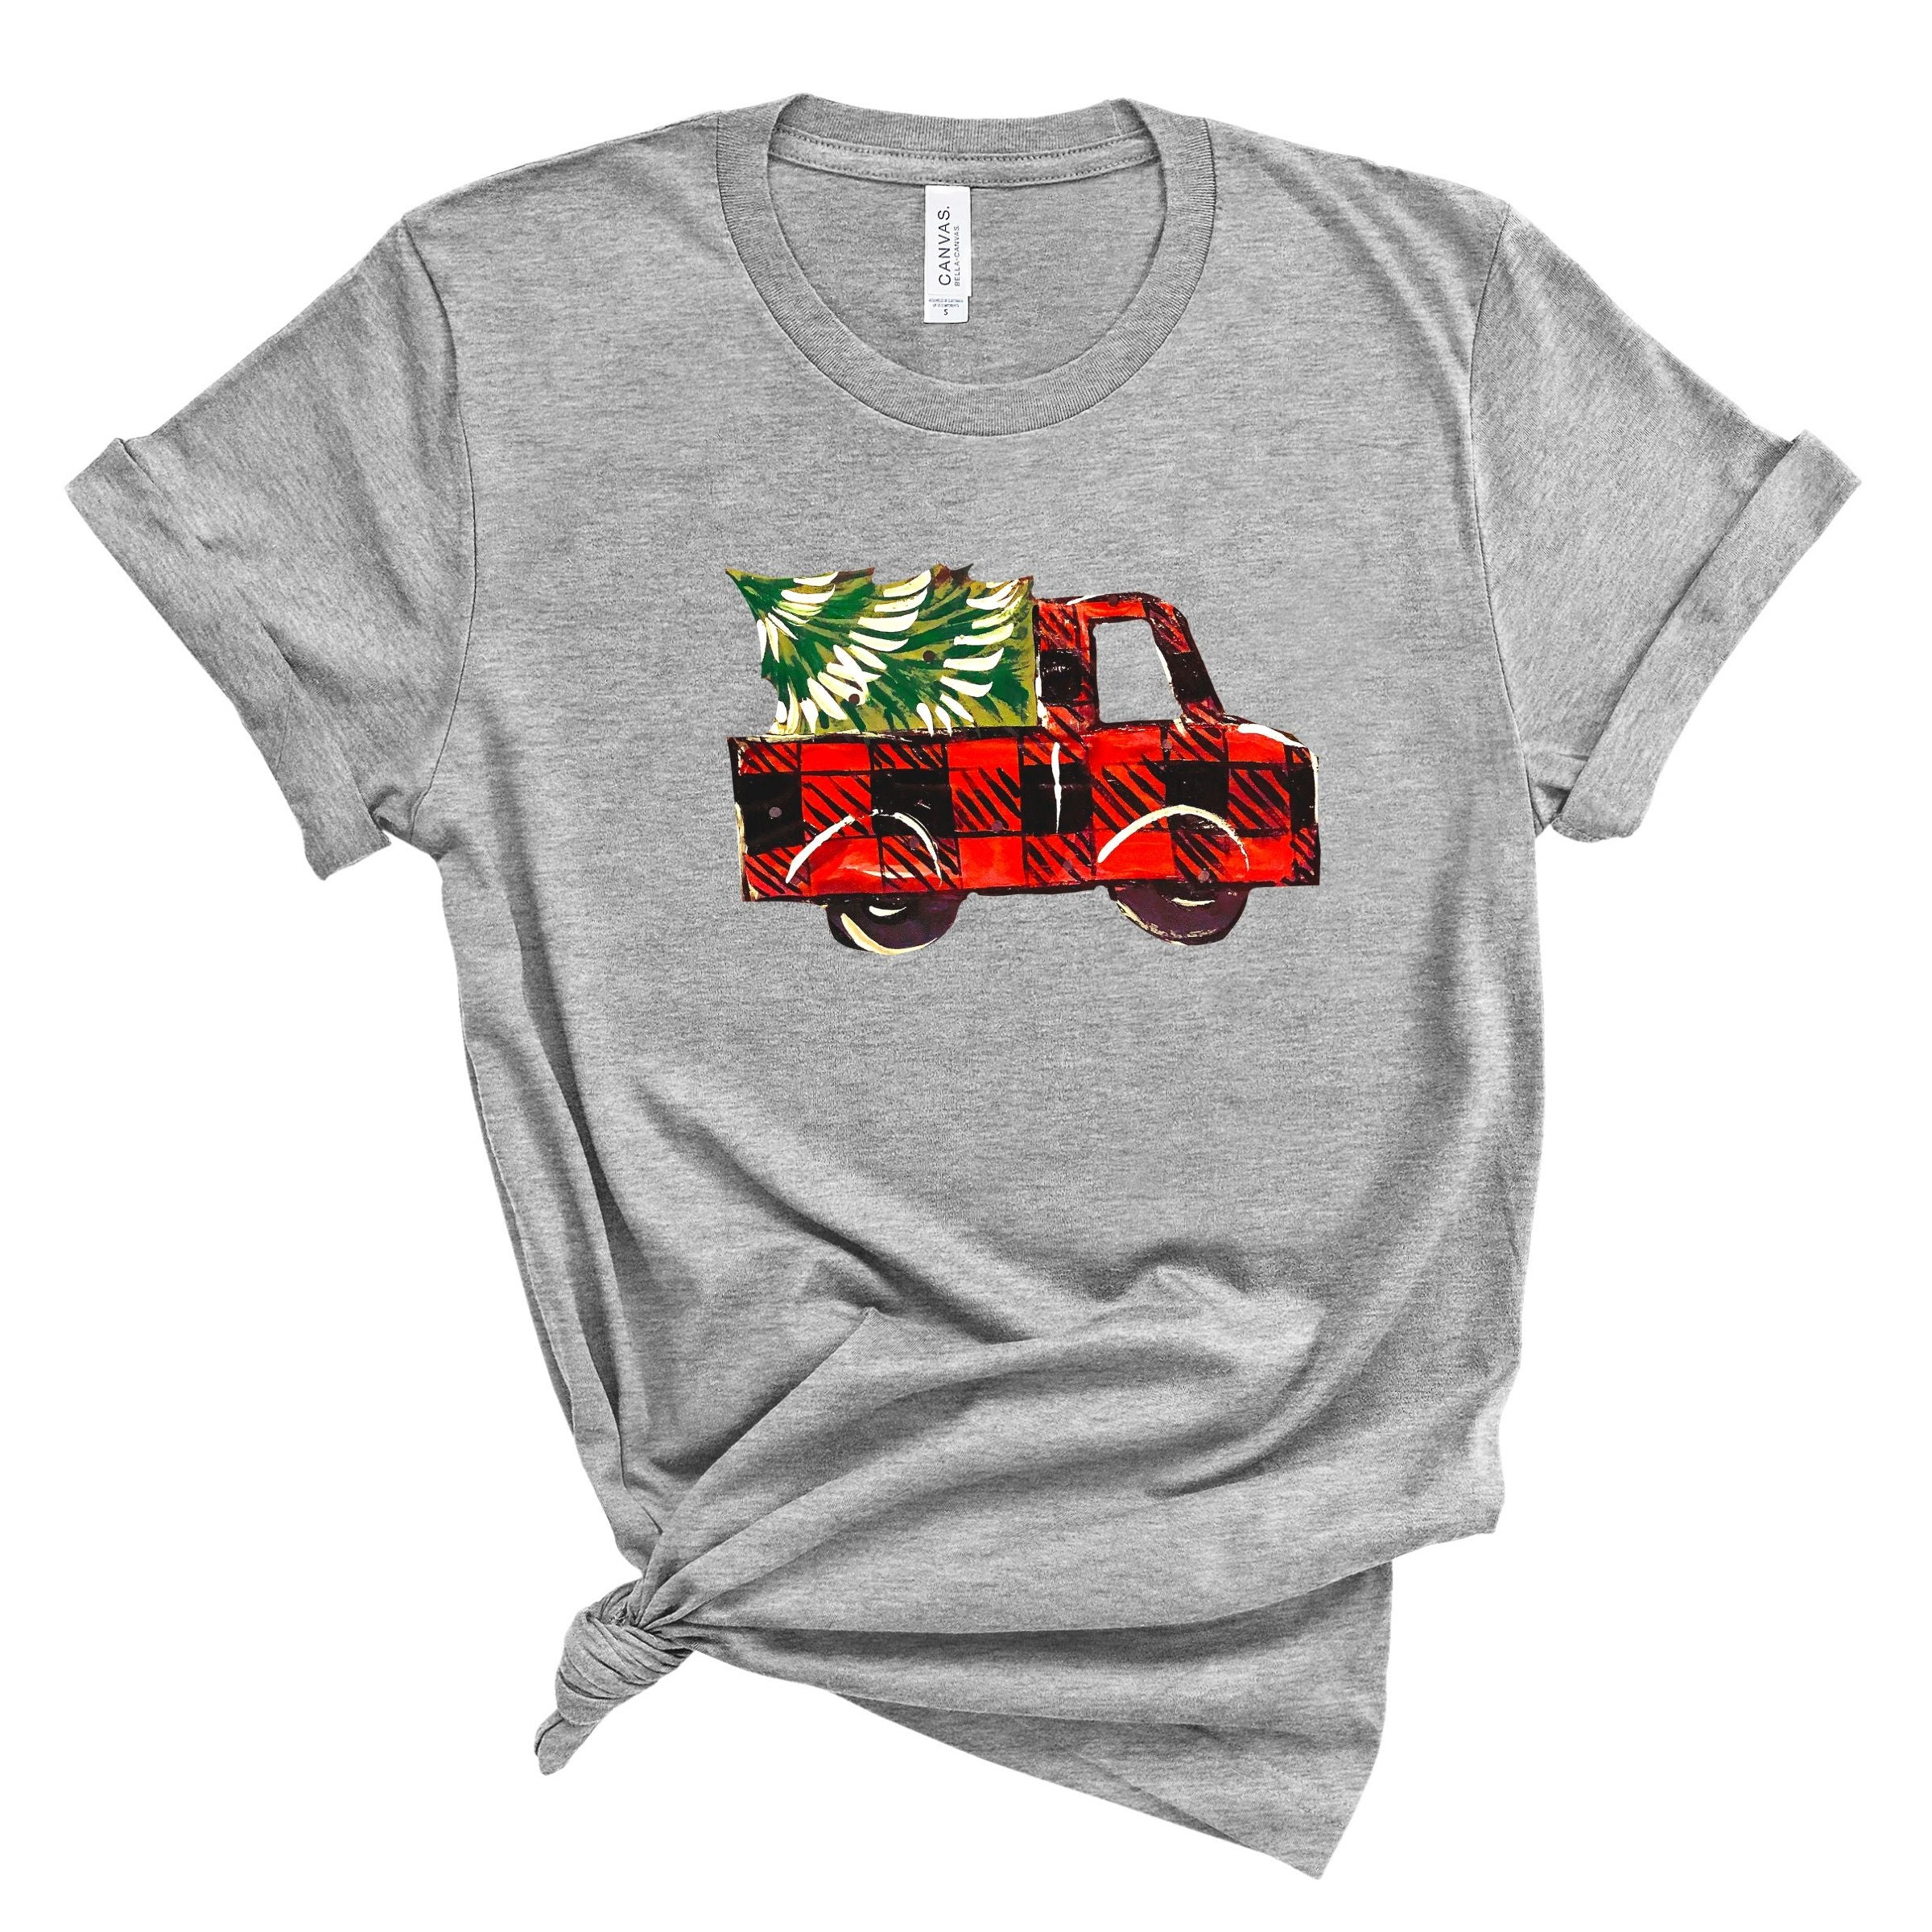 S - Christmas Truck - Athletic Gray-Shop-Wholesale-Womens-Boutique-Custom-Graphic-Tees-Branding-Gifts